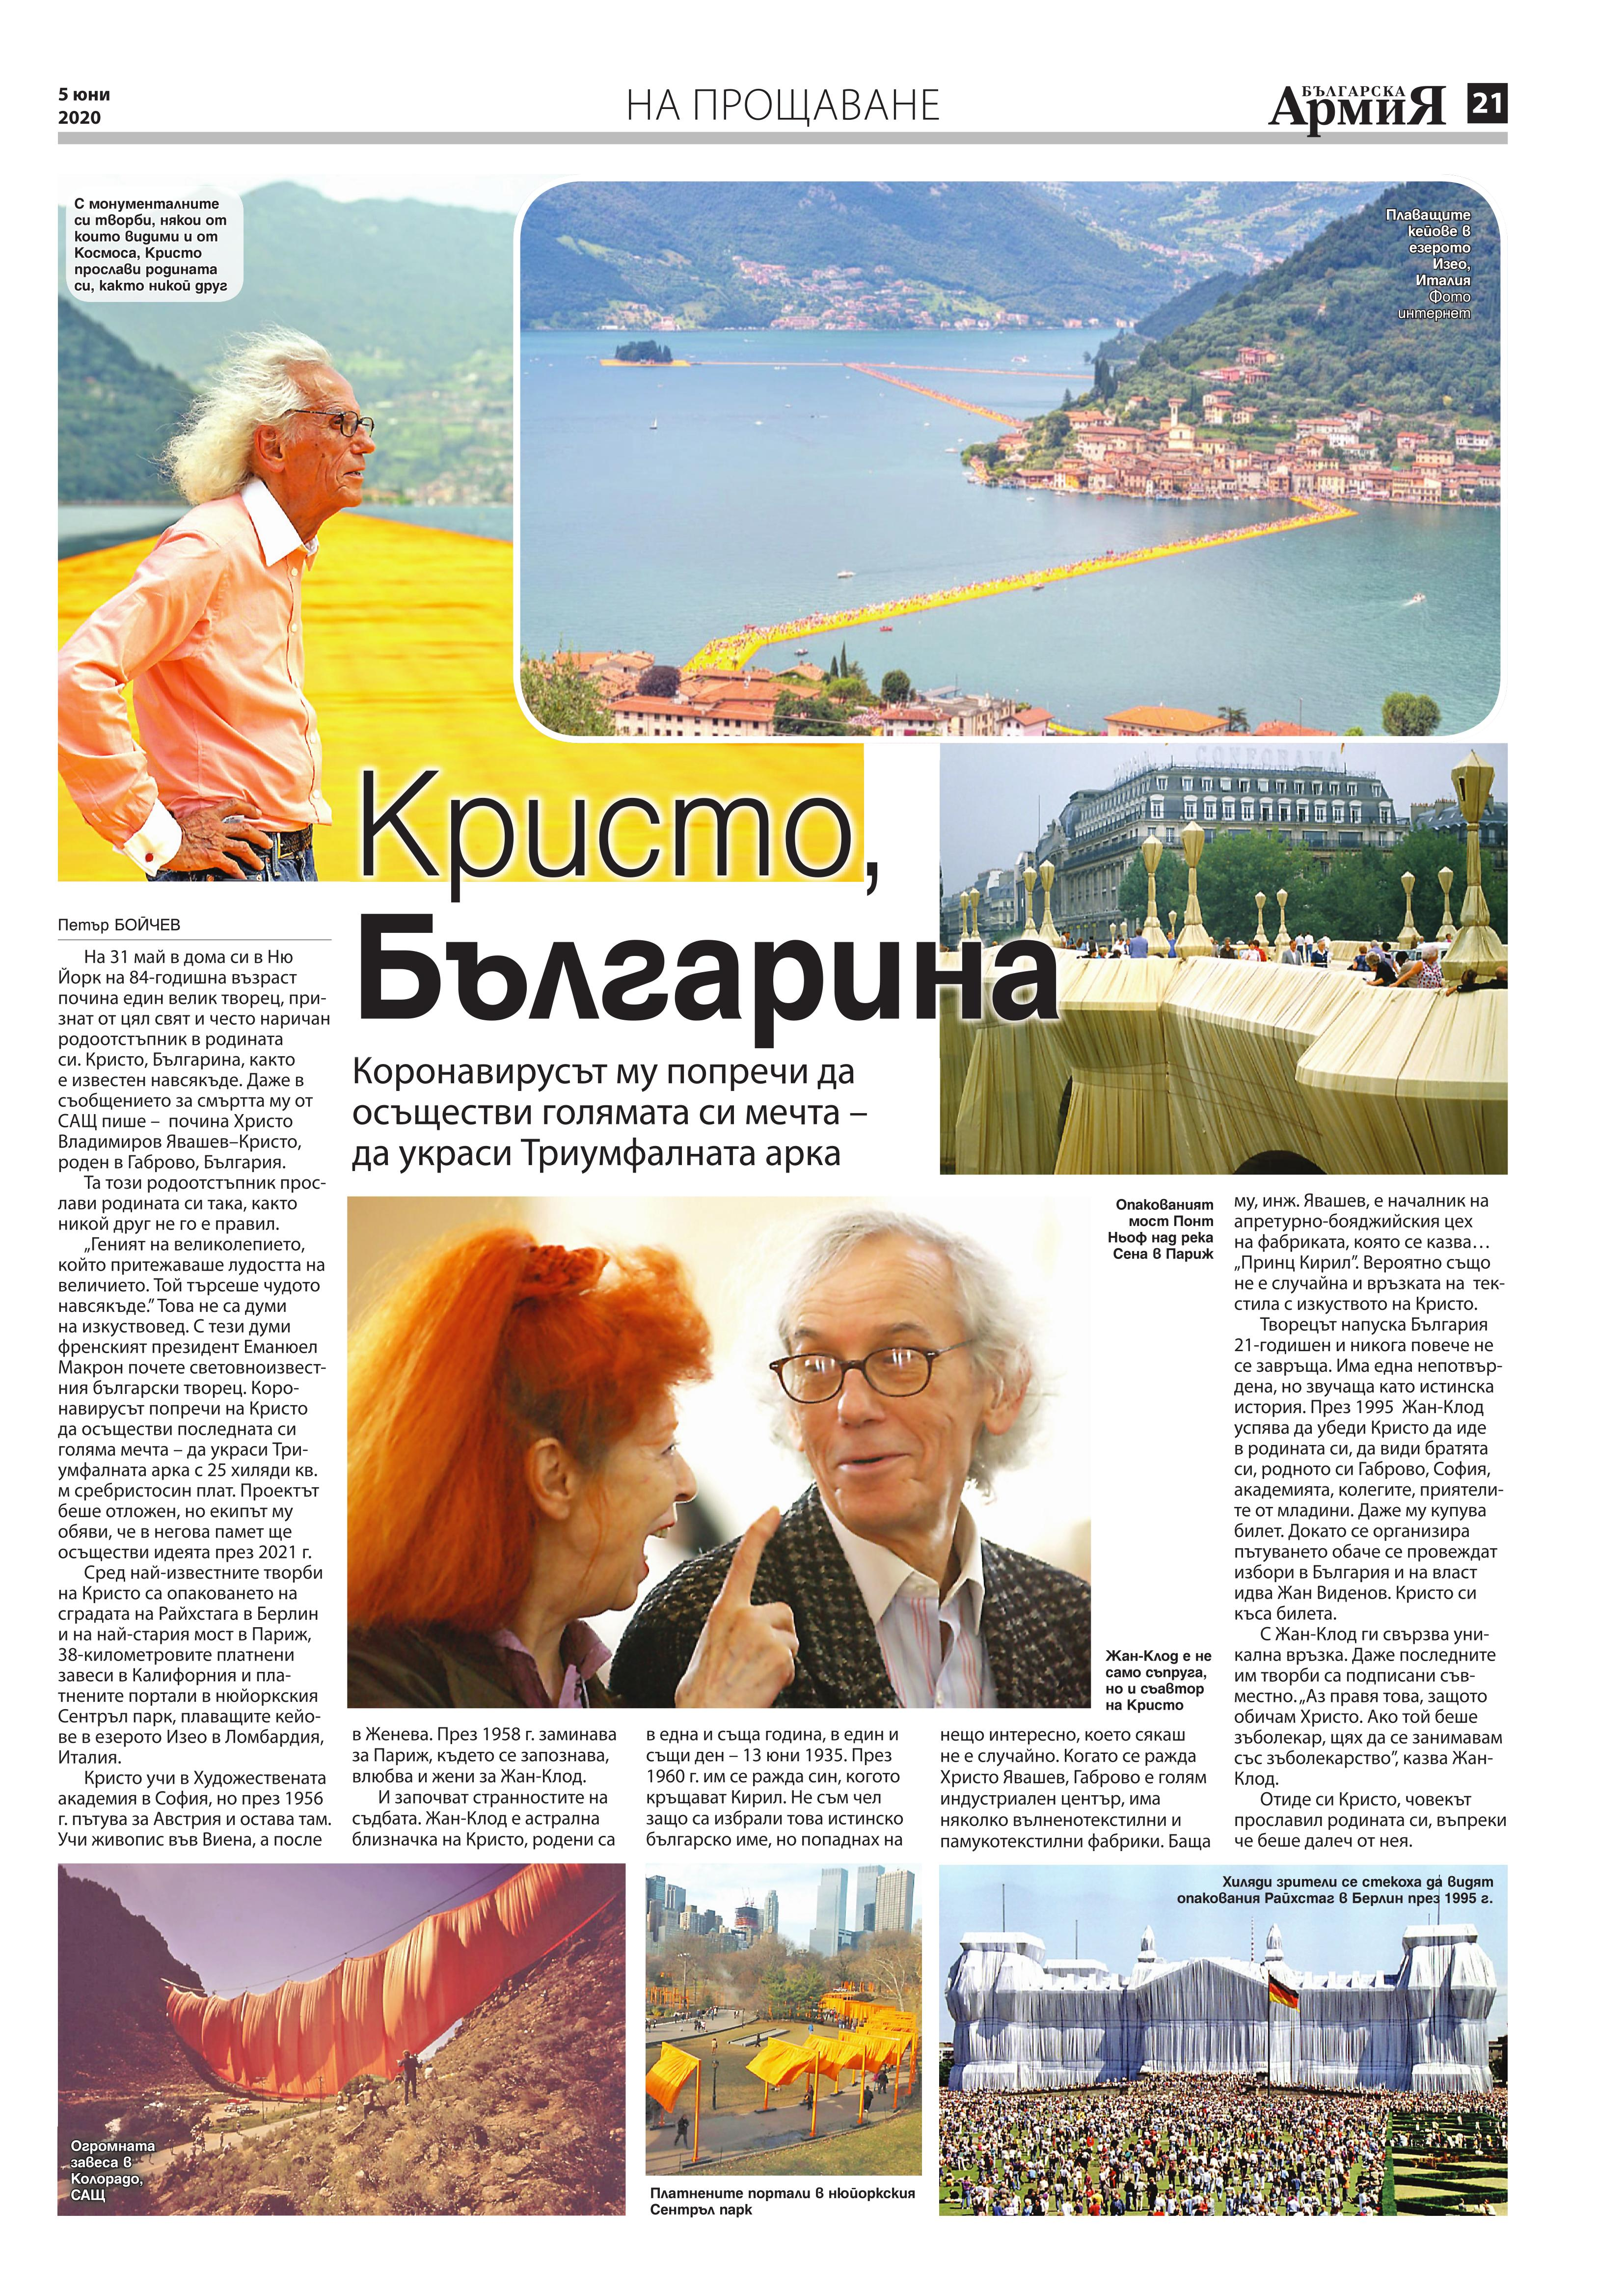 https://www.armymedia.bg/wp-content/uploads/2015/06/21.page1_-142.jpg